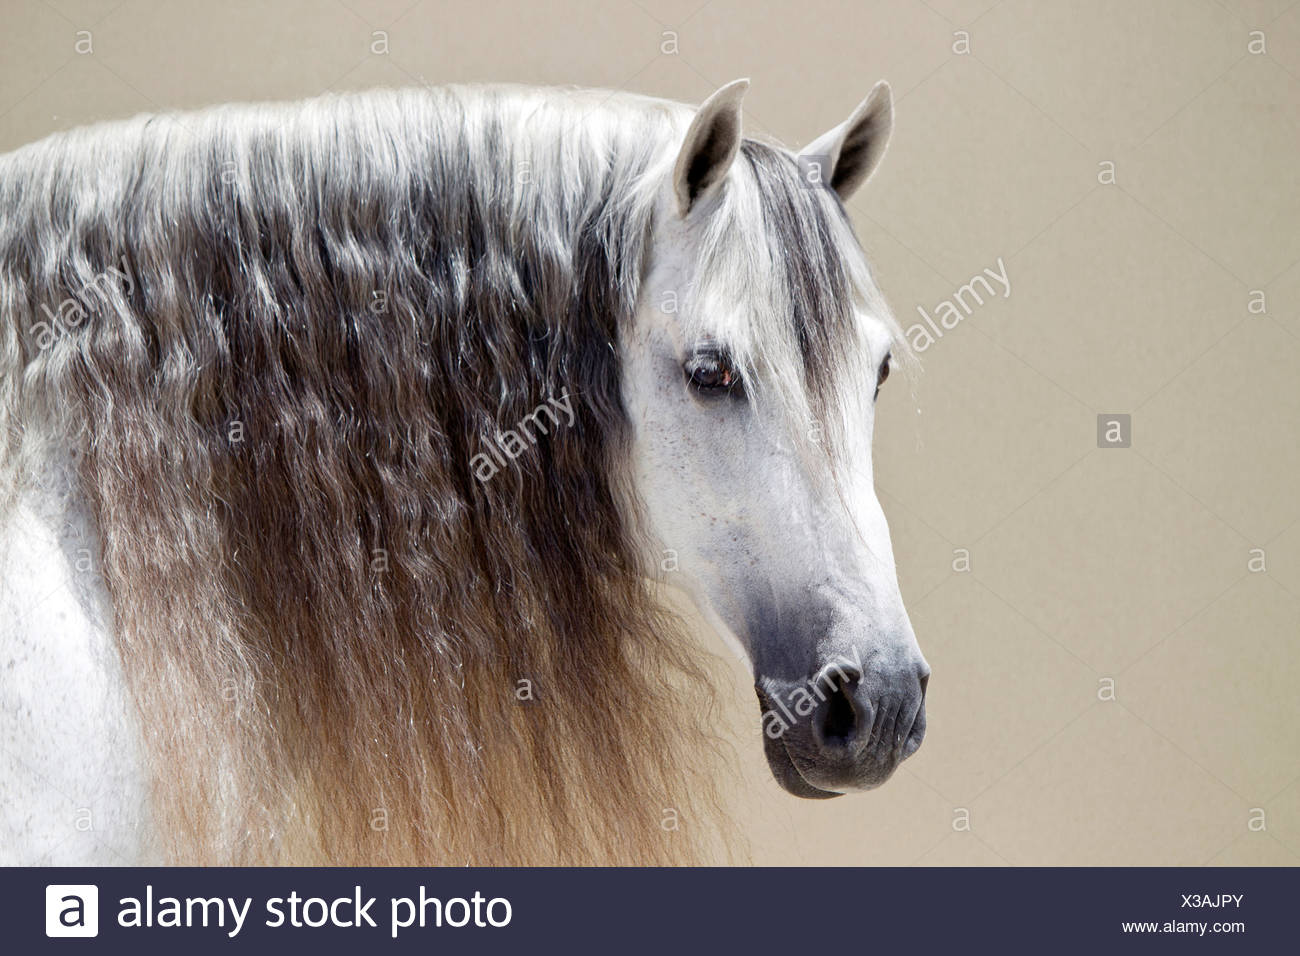 Pure Spanish Horse, PRE, Andalusian Horse - Stock Image